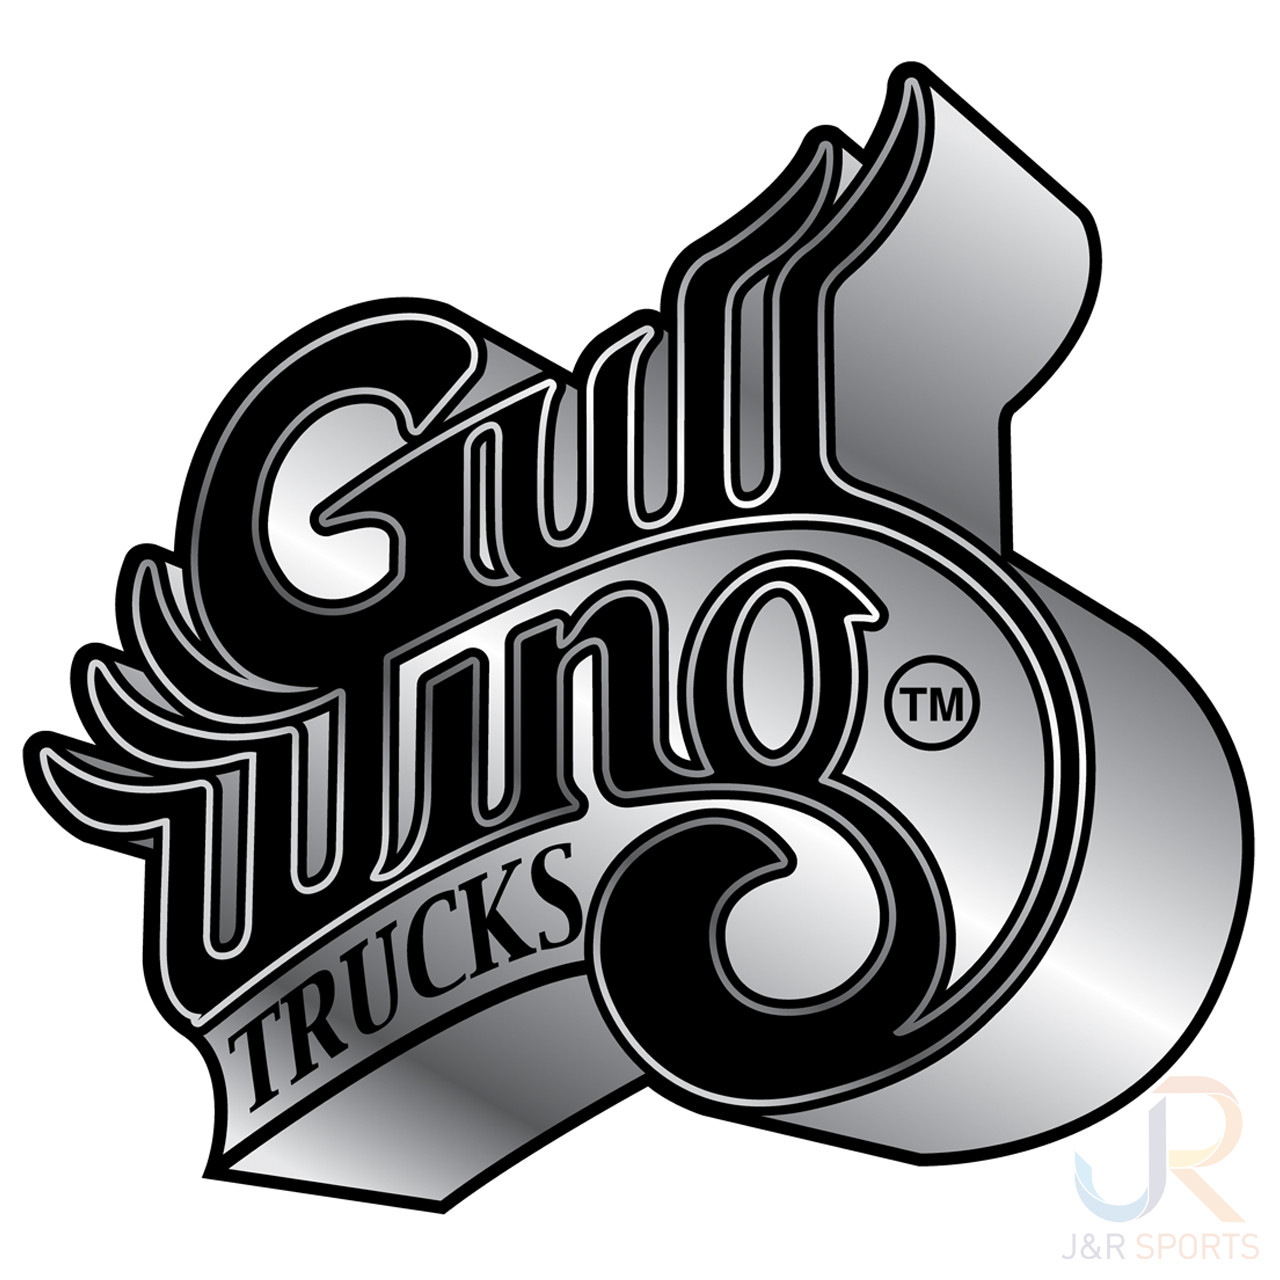 Gullwing Trucks Wings Logo Black Grey Fade